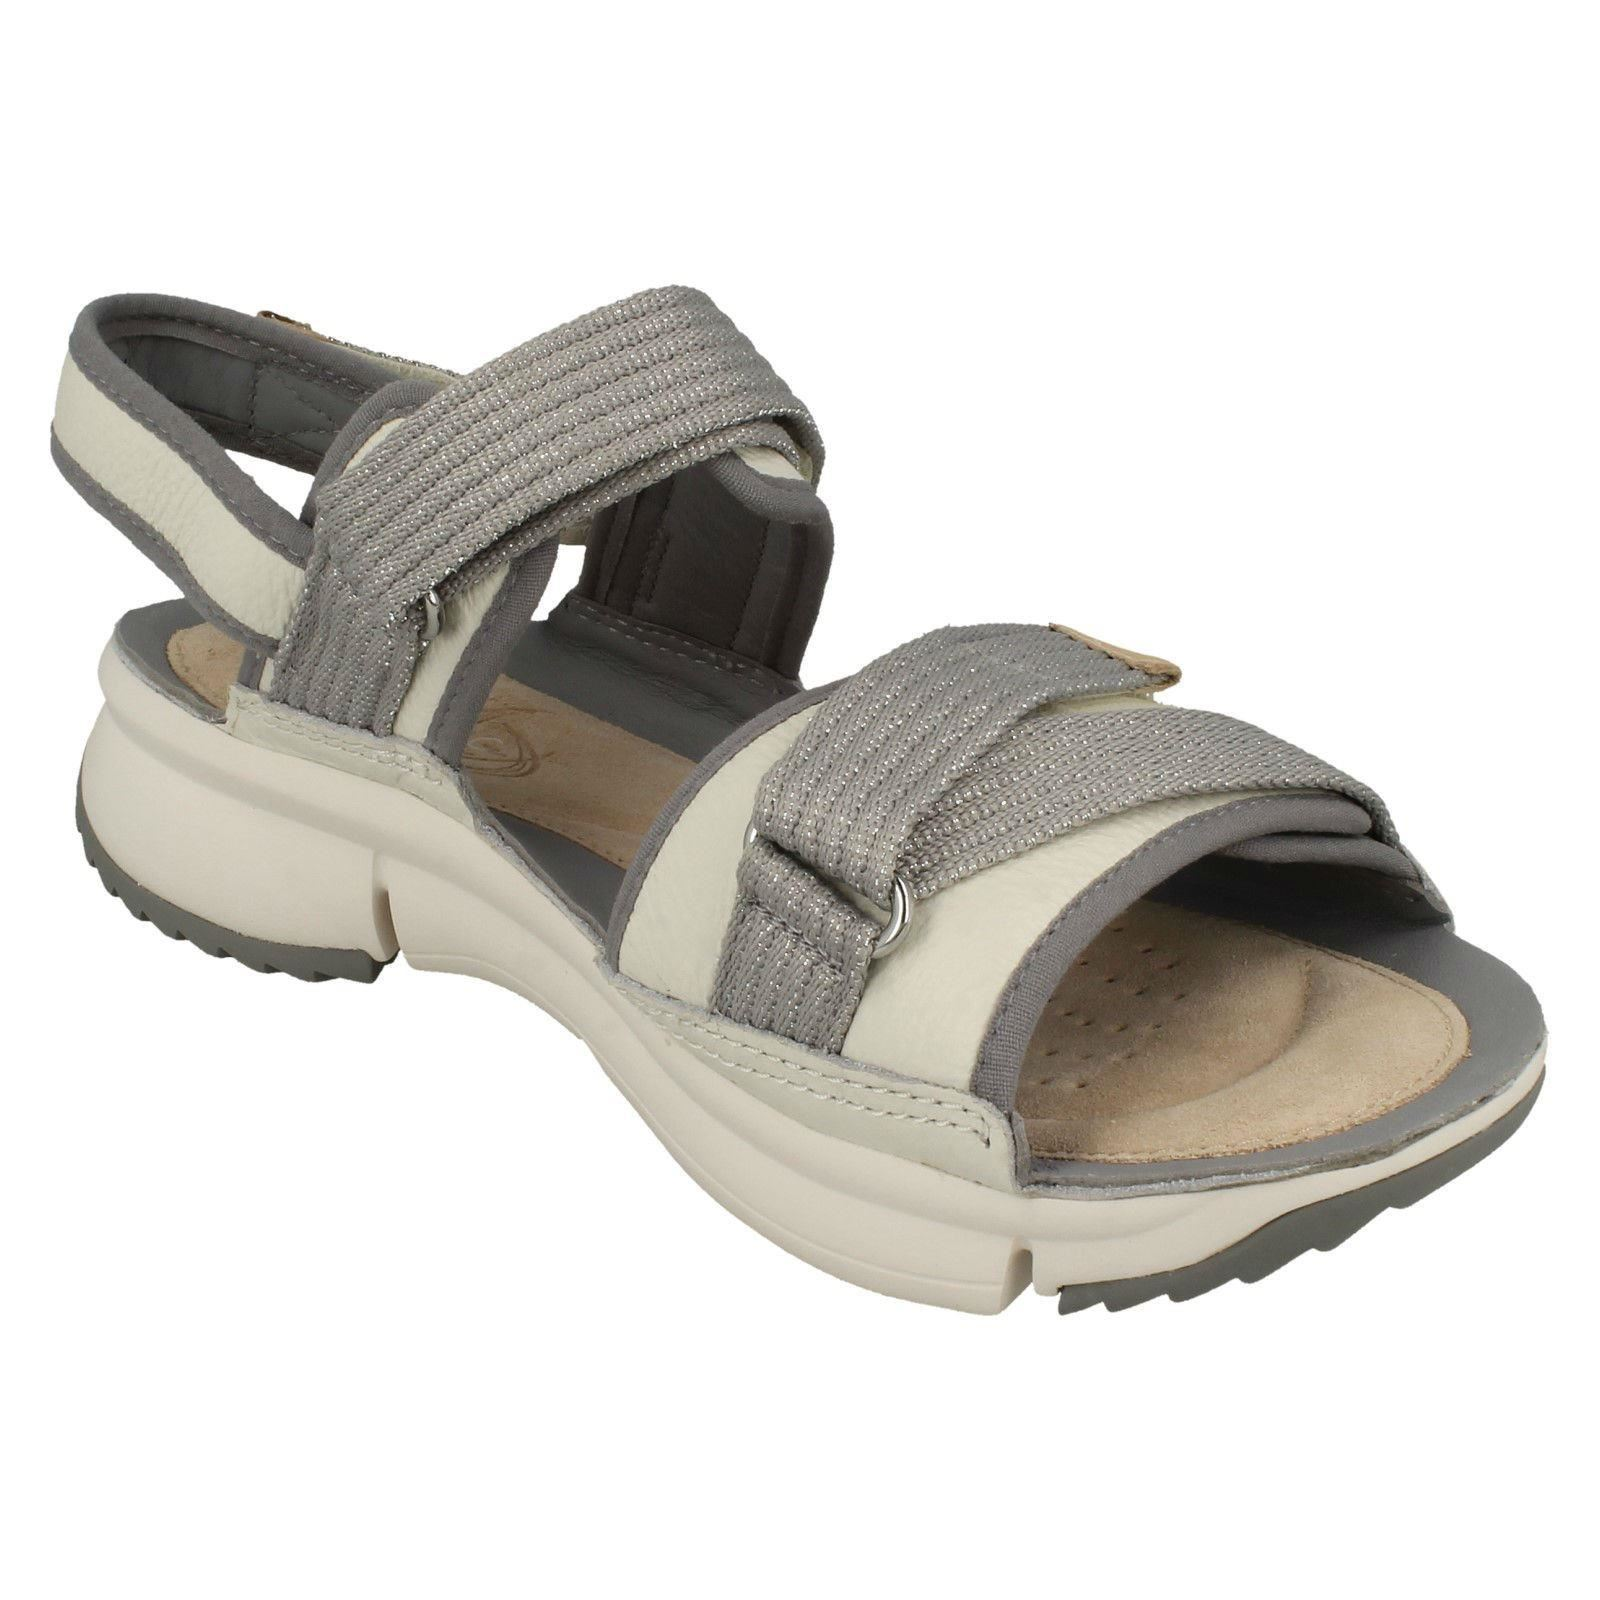 Tri Ladies WalkEbay Trigenic Clarks Sandals GSMqUzVp